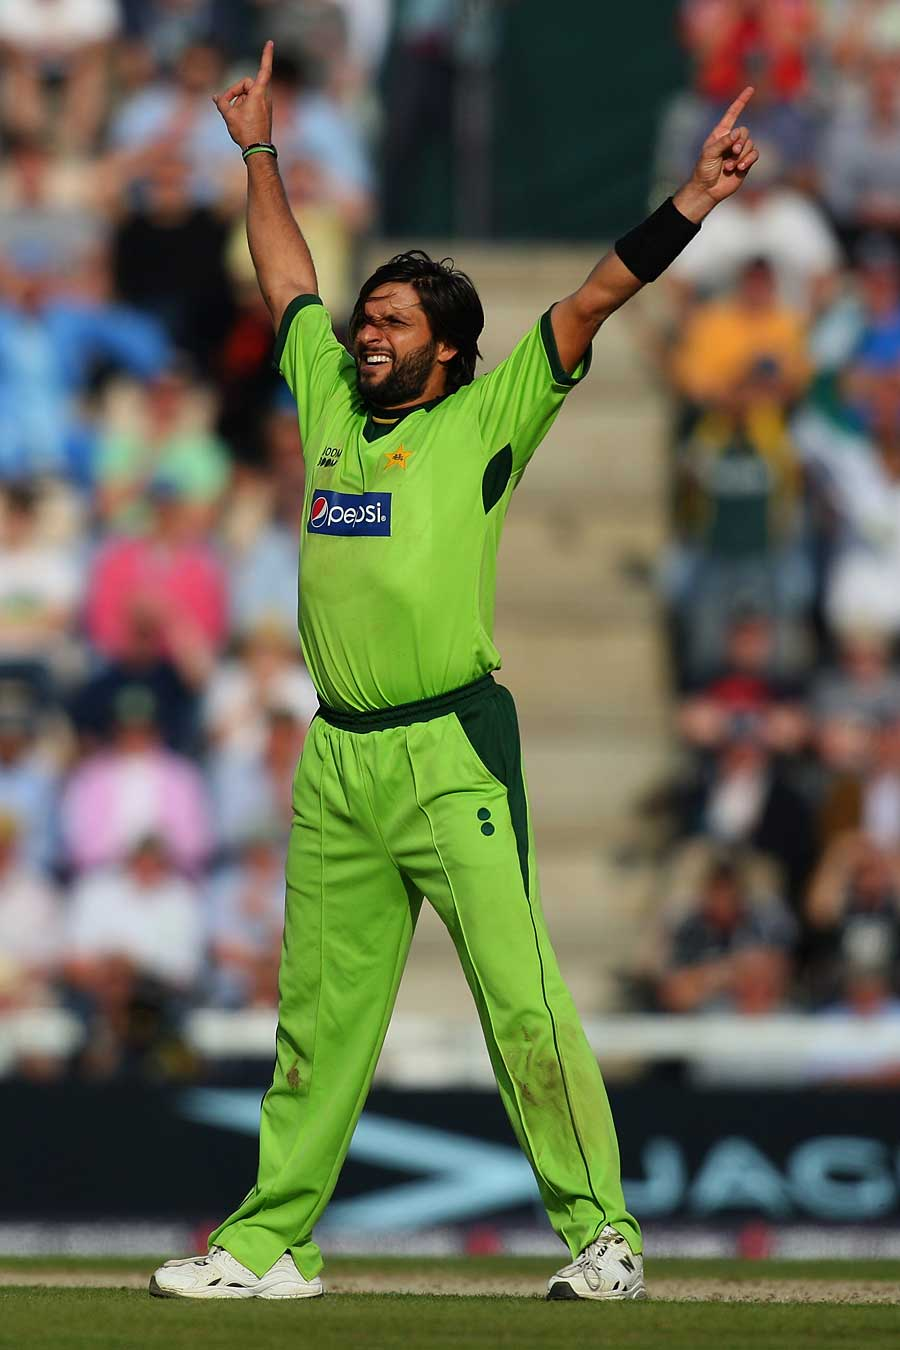 my favourite crickter shahid afridi Shahid afridi, born sahibzada mohammad shahid khan afridi on 1 march 1980)[2] is a pakistani cricketer he played 27 tests, 350 one day internationals, and 59 twenty20 internationals (t20is) for the pakistani national team between 1996 and 2012.